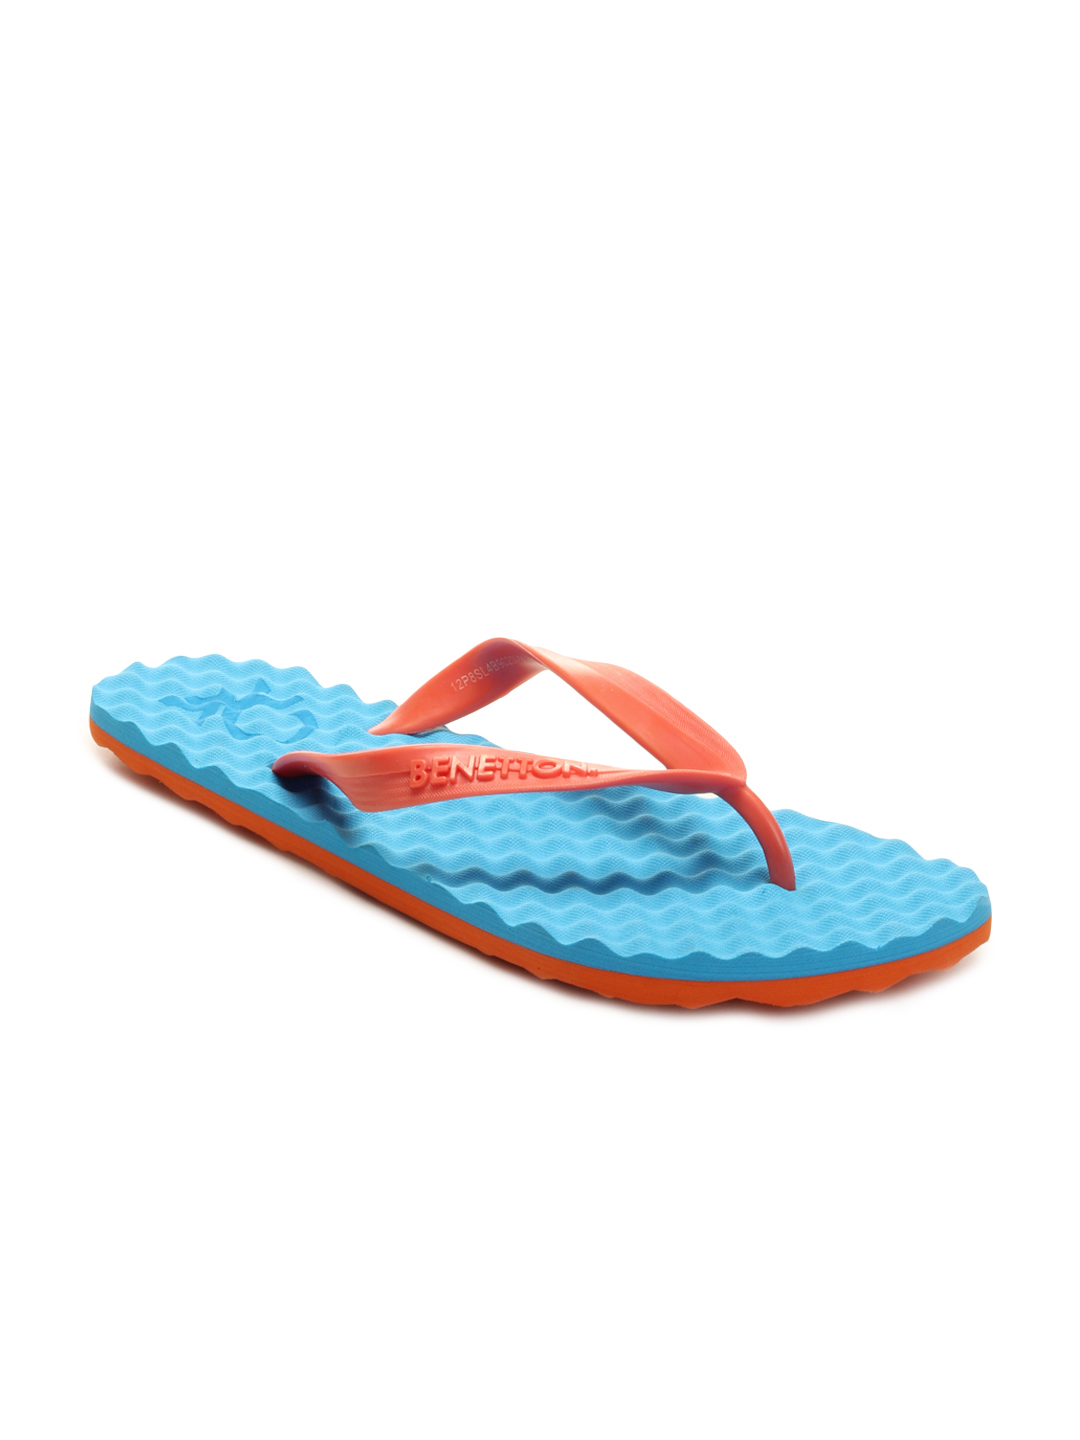 United Colors of Benetton Men Blue Flip Flops